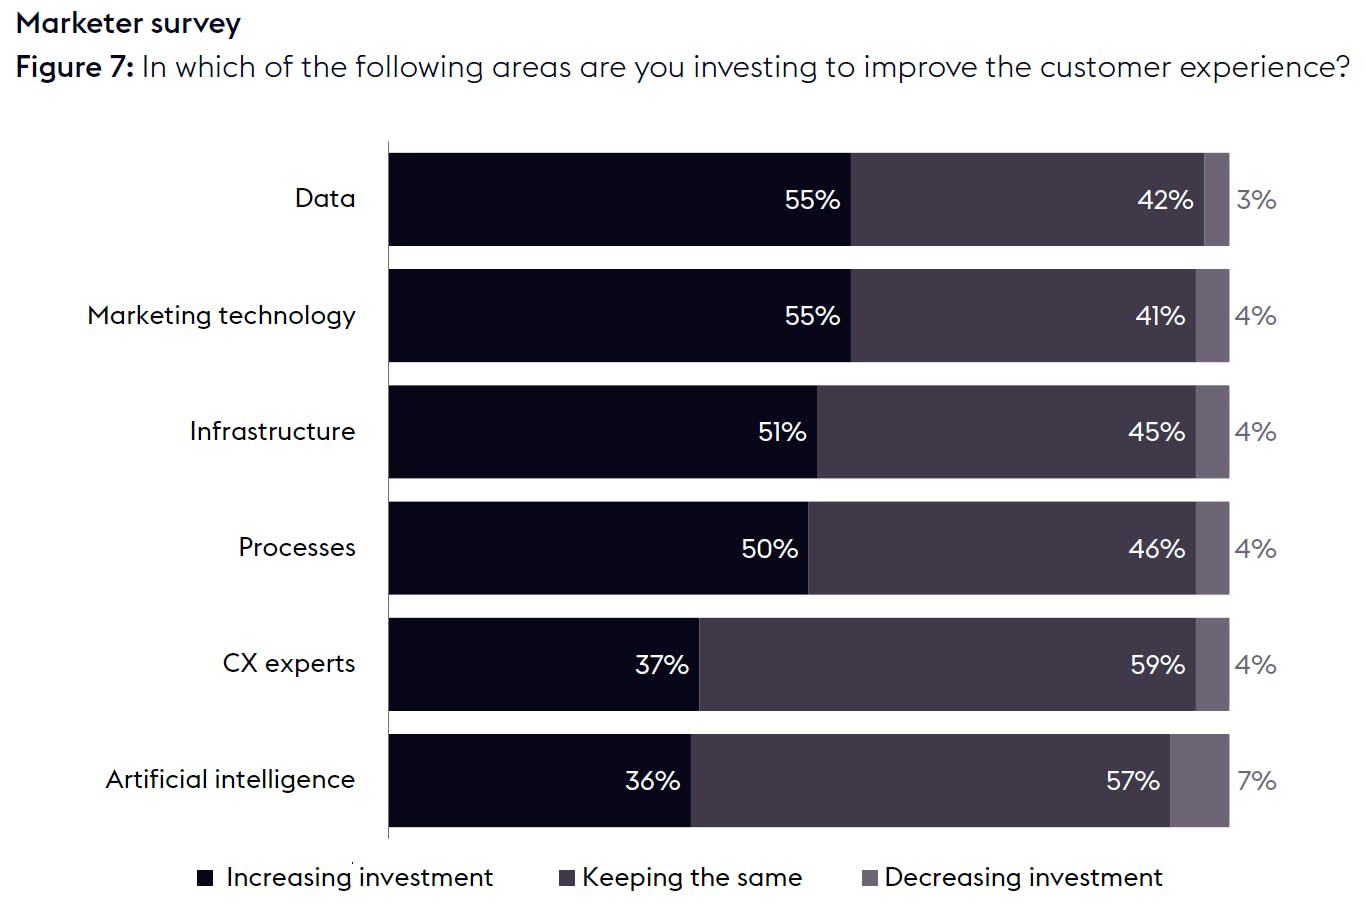 Graph which indicates whether marketers are increasing, maintaining or decreasing their investment in six areas related to CX: data, marketing technology, infrastructure, processes, CX experts and artificial intelligence.